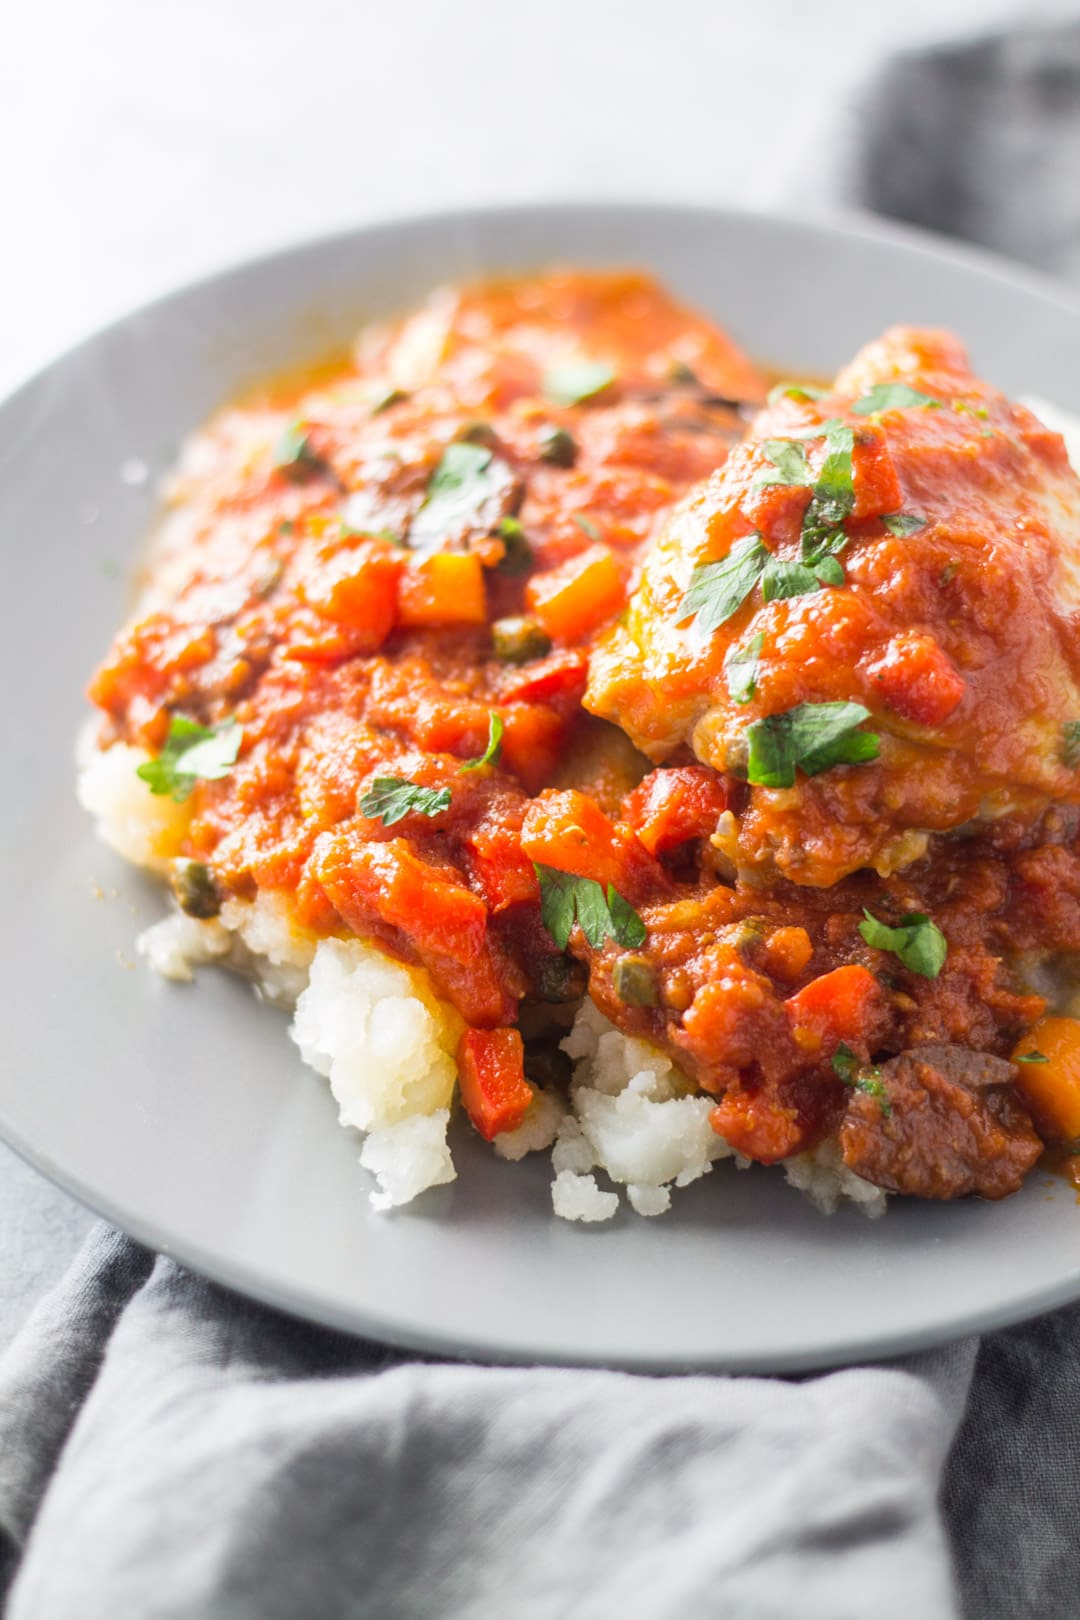 A serving of chicken cacciatore over mashed potatoes